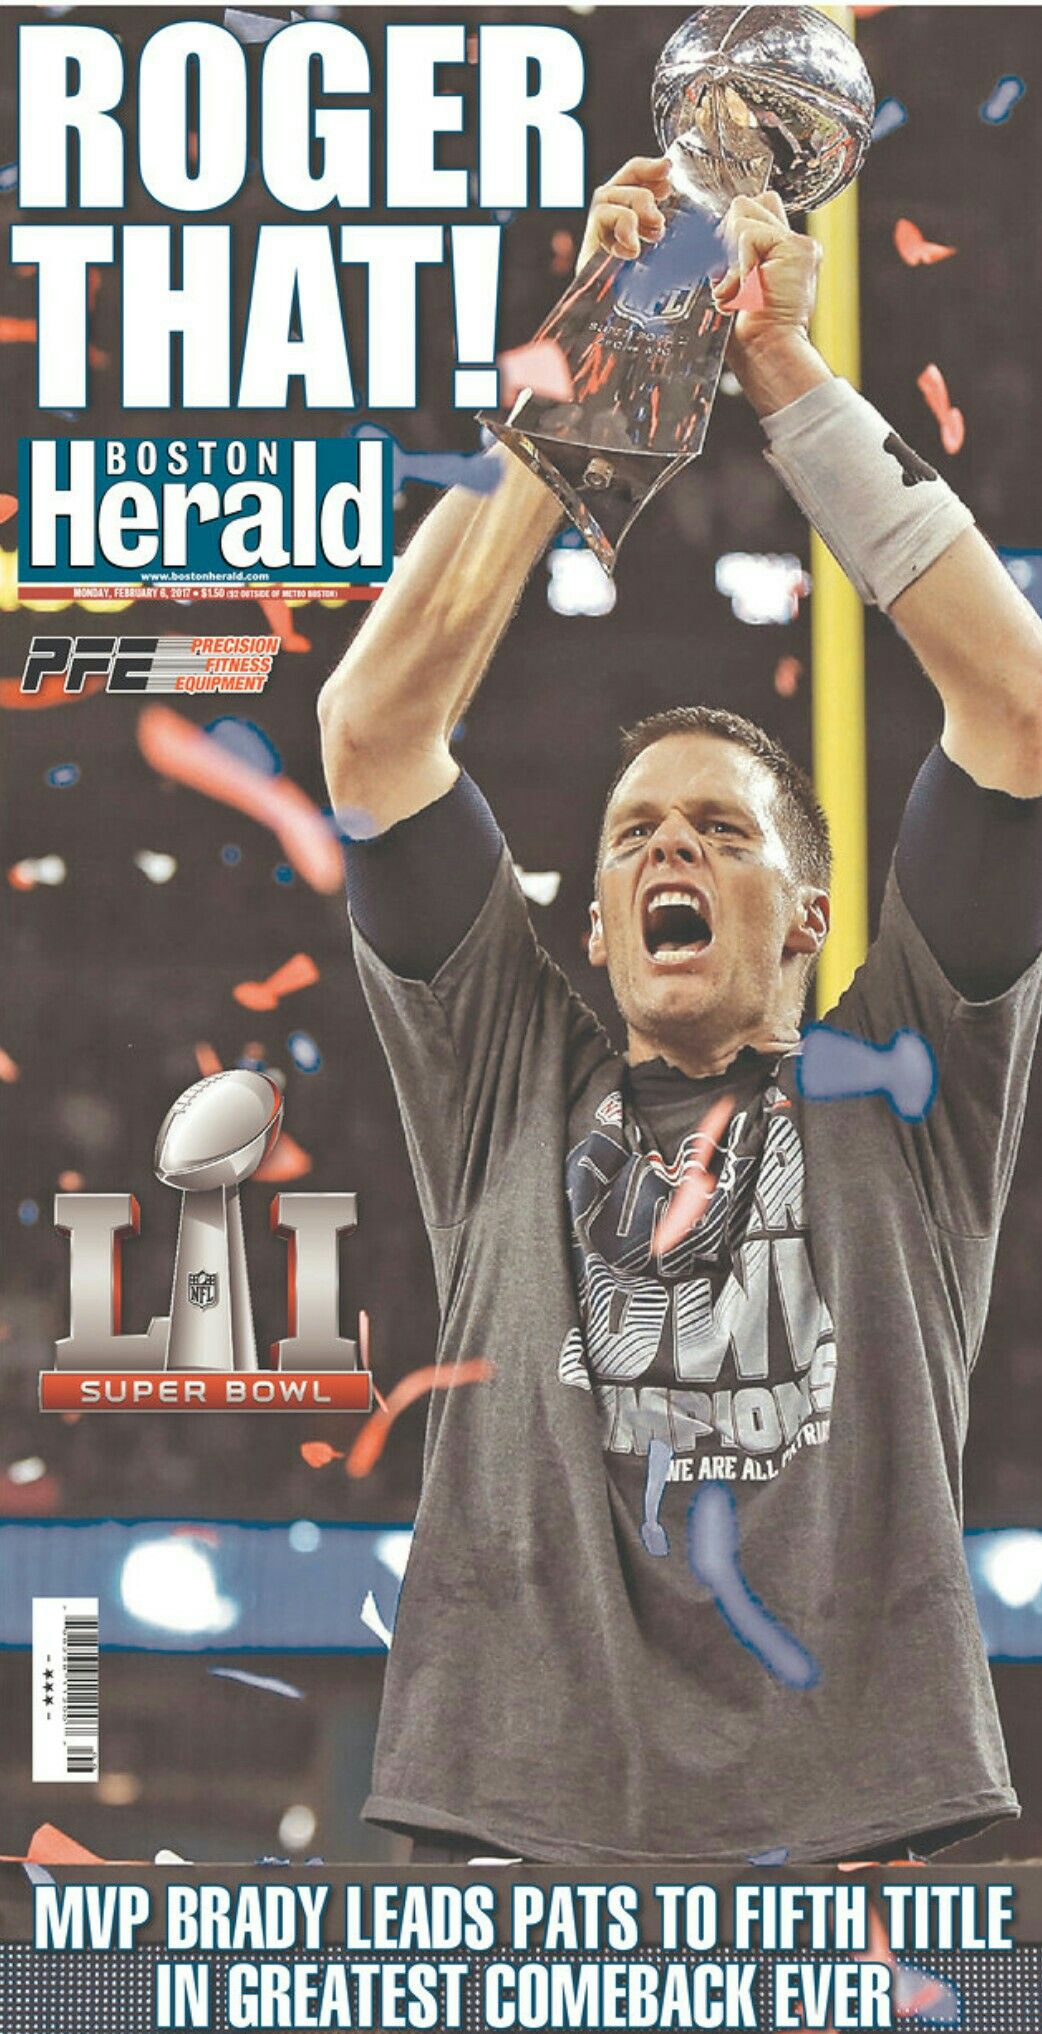 New England Patriots Win Superbowl Li 51 34 28 With A Come From Behin New England Patriots New England Patriots Merchandise New England Patriots Football